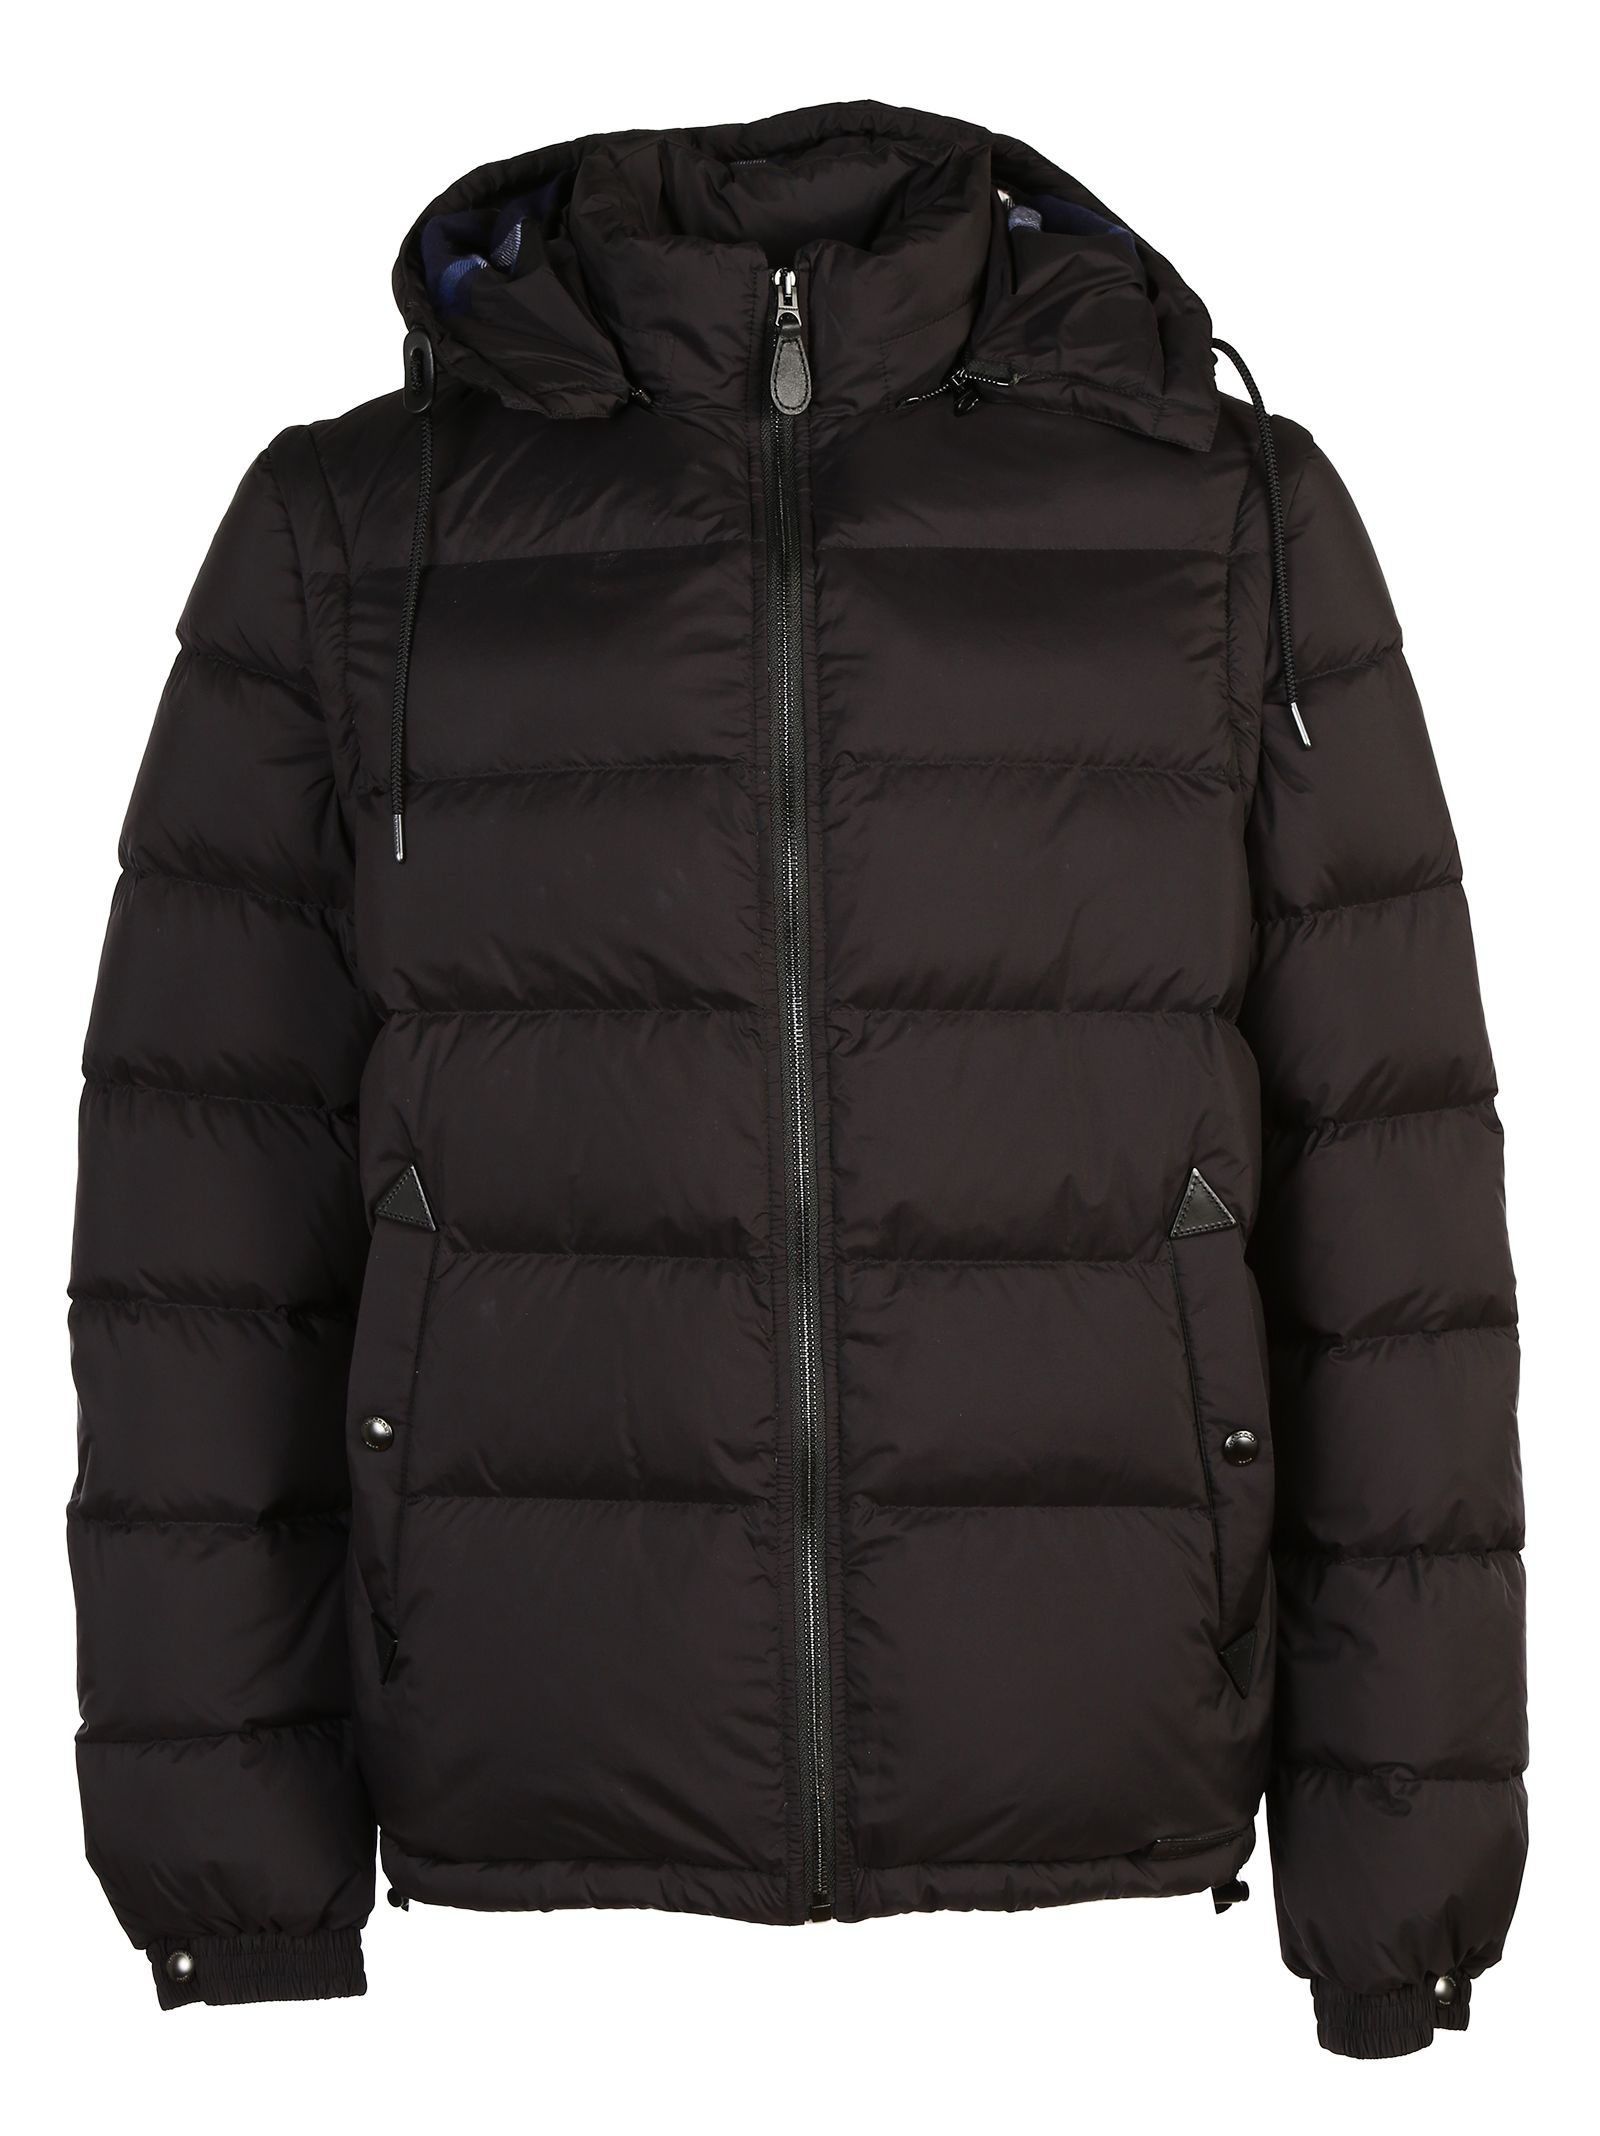 burberry brit burberry brit hooded down jacket with detachable sleeves black men 39 s down. Black Bedroom Furniture Sets. Home Design Ideas